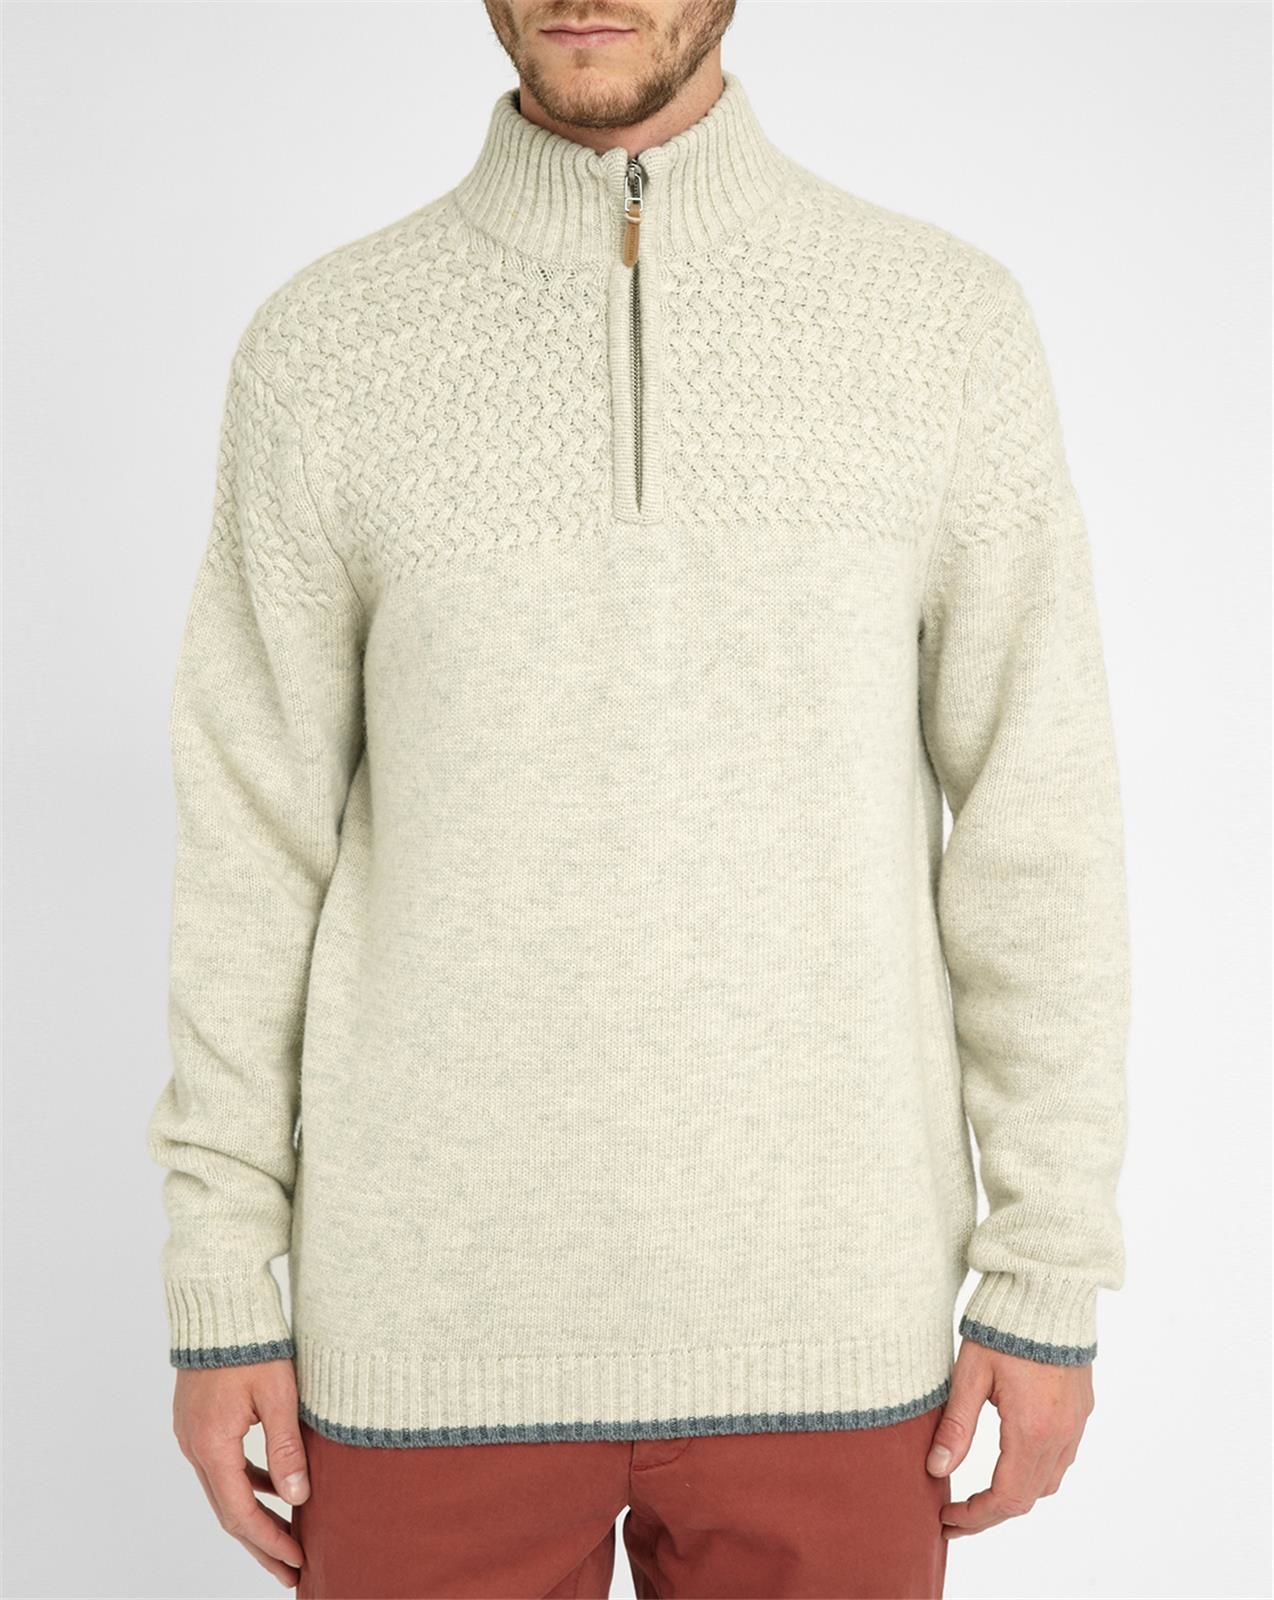 Harris wilson Beige Lambswool Knitted Details Zip-neck Sweater in Natural for...